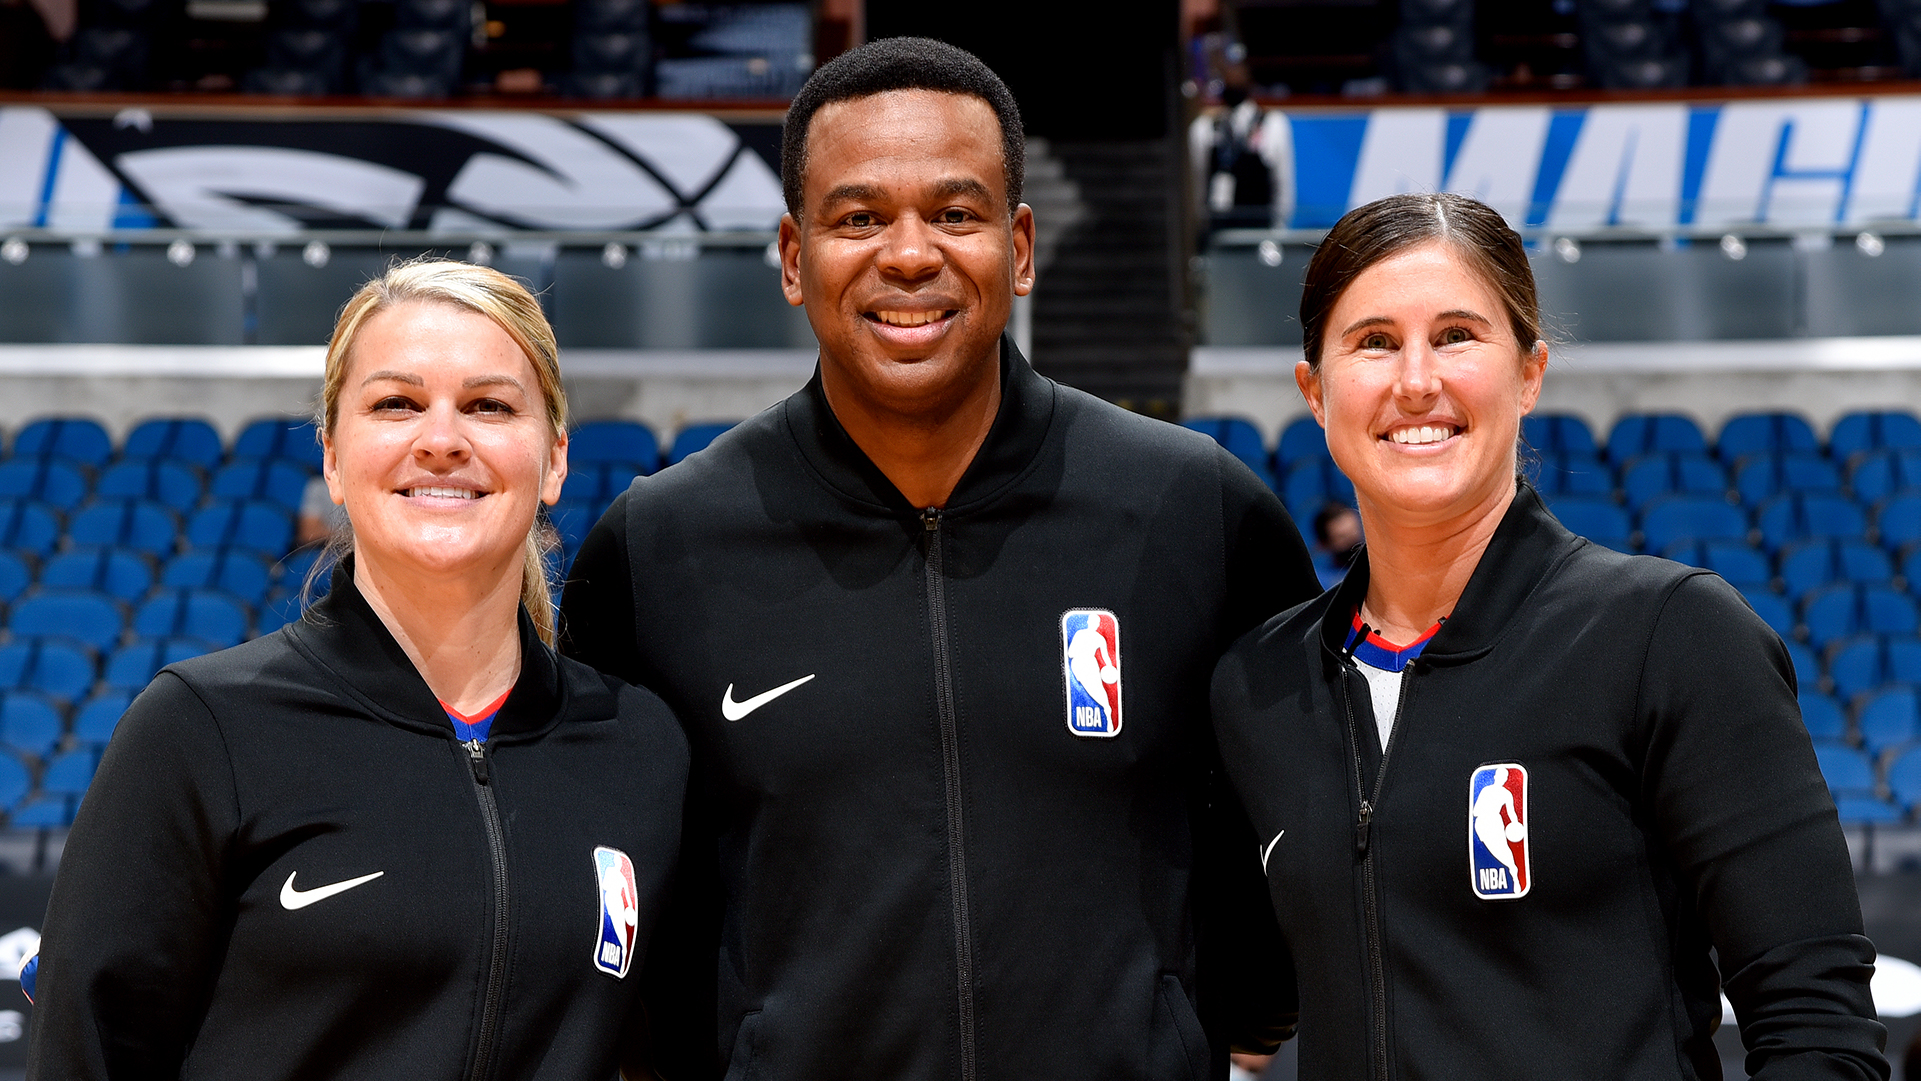 Sago, Schroeder part of NBA's first two-woman ref crew